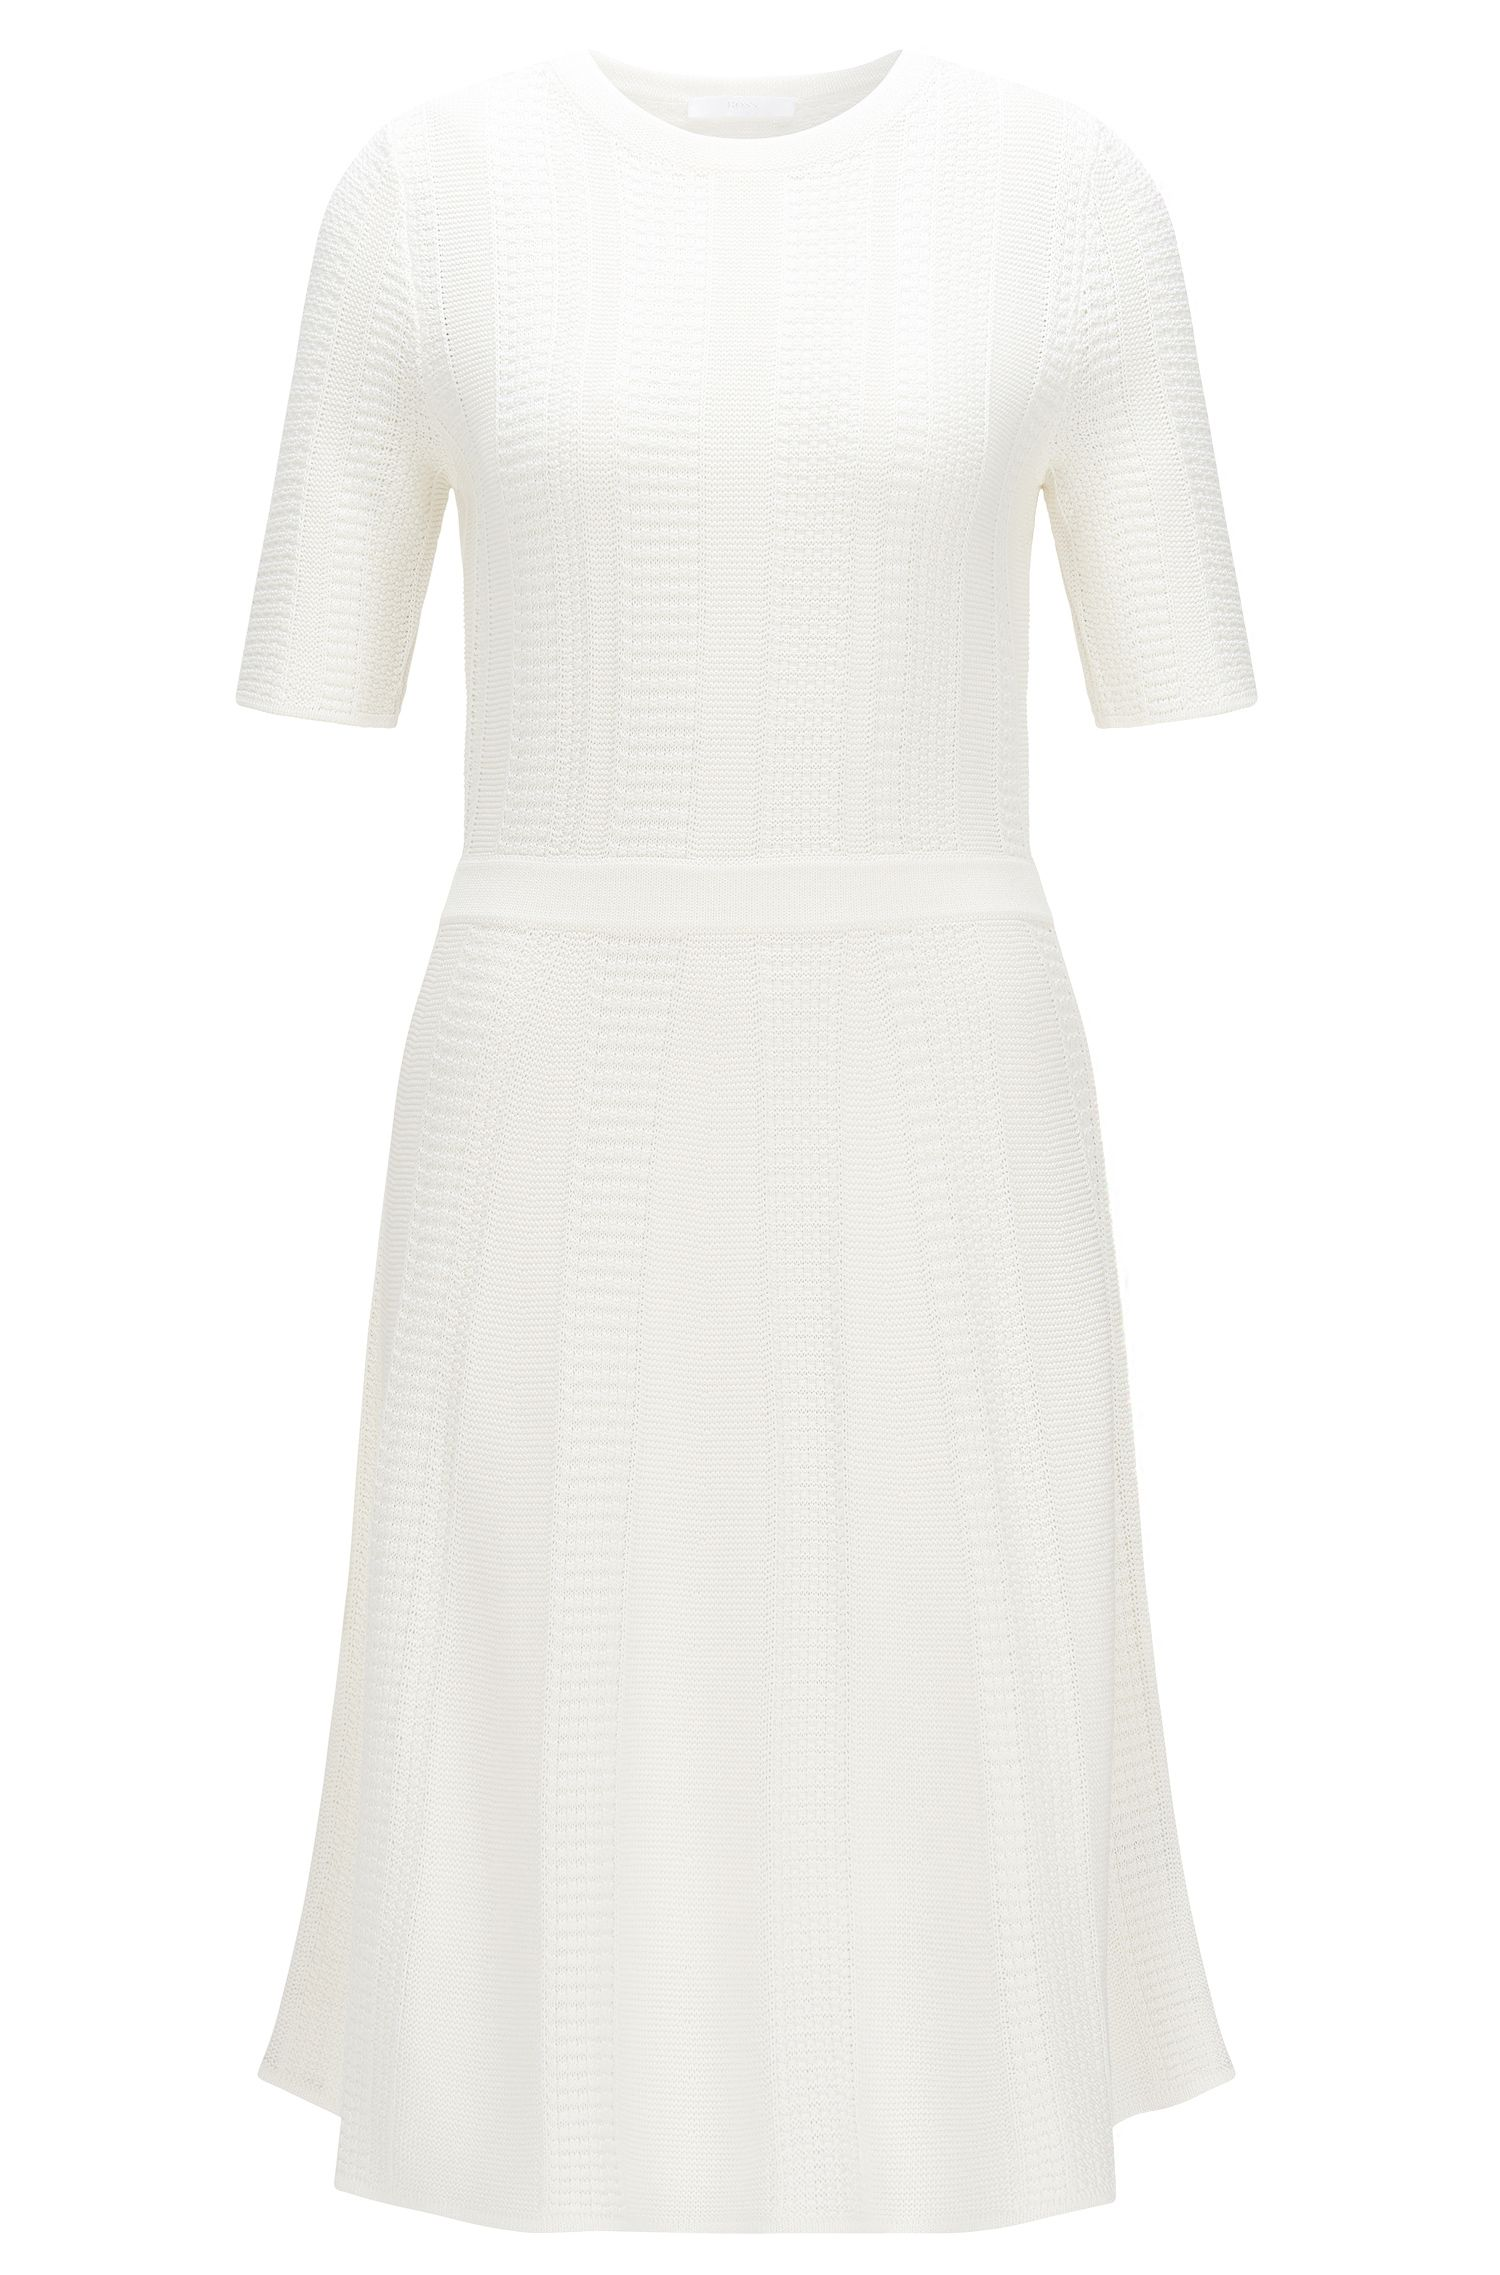 'Frizana' | A-Line Cotton Blend Sweater Dress